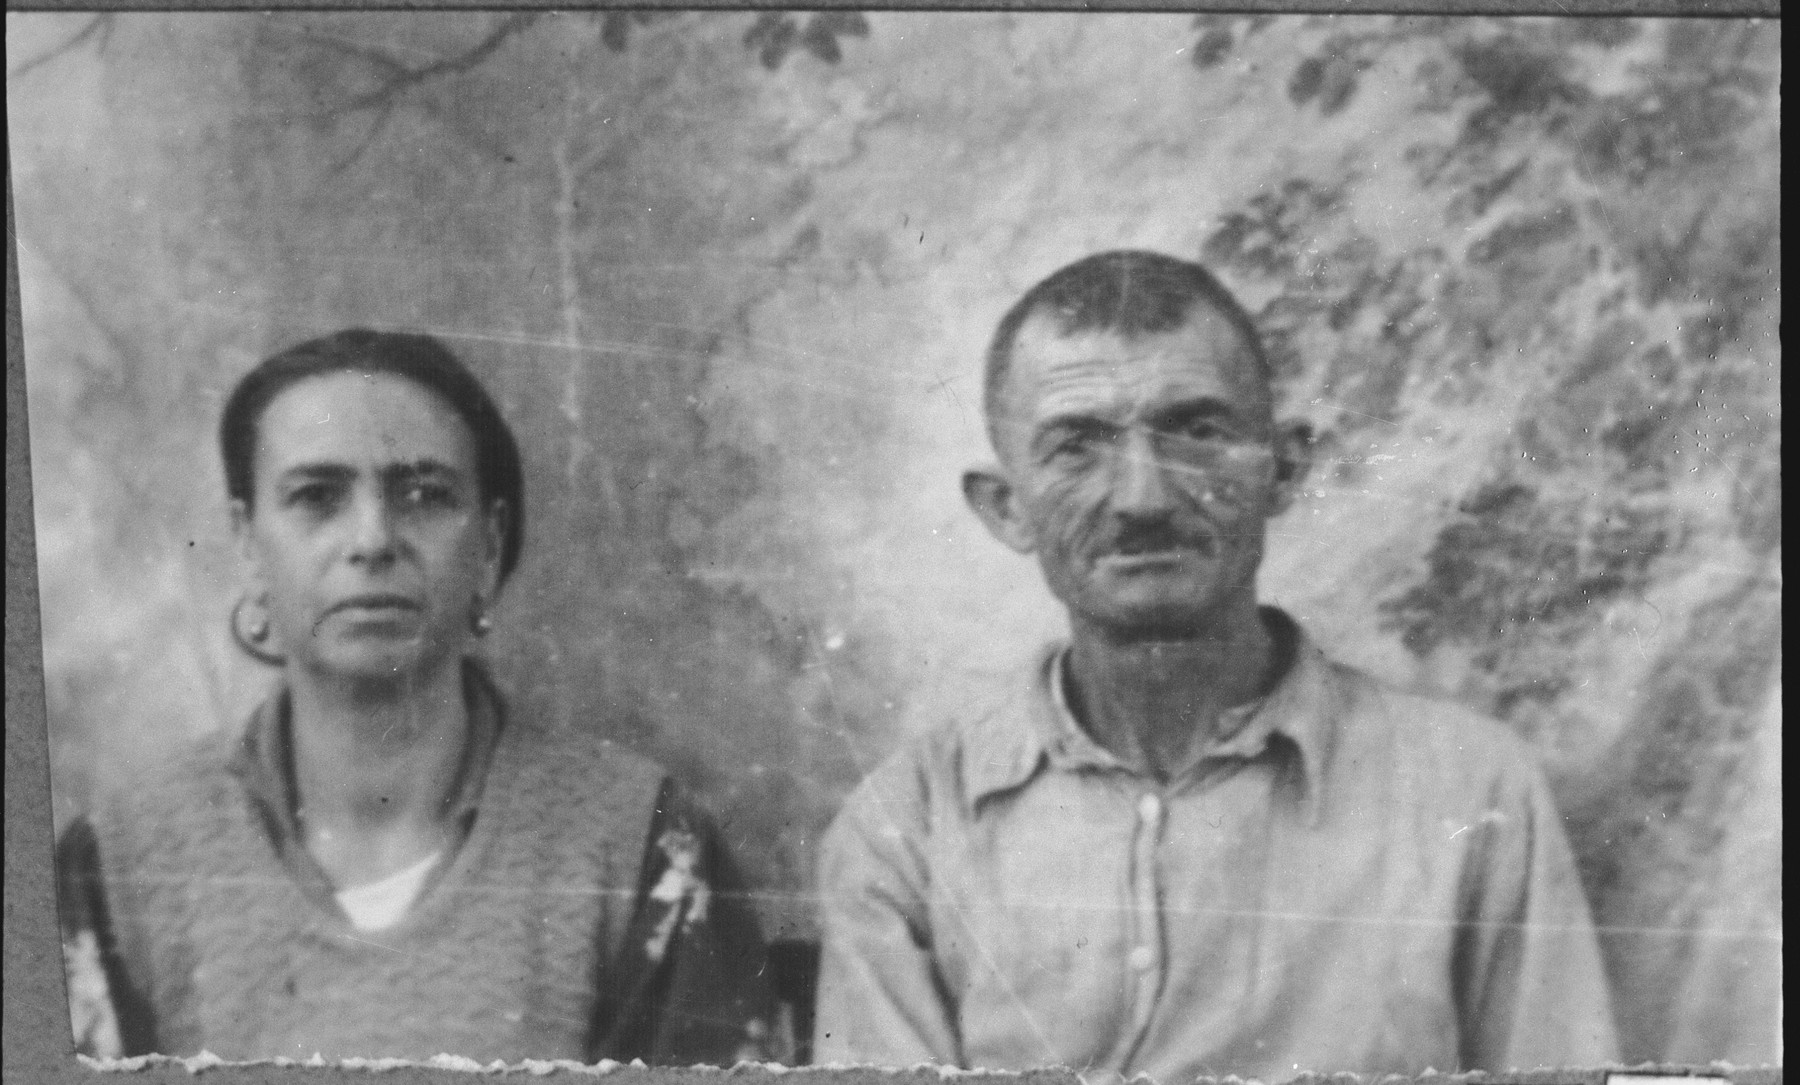 Portrait of David Mishulam and his wife, Klara.  David was a porter and Klara, a laundress.  They lived at Kossantchicheva 14 in Bitola.